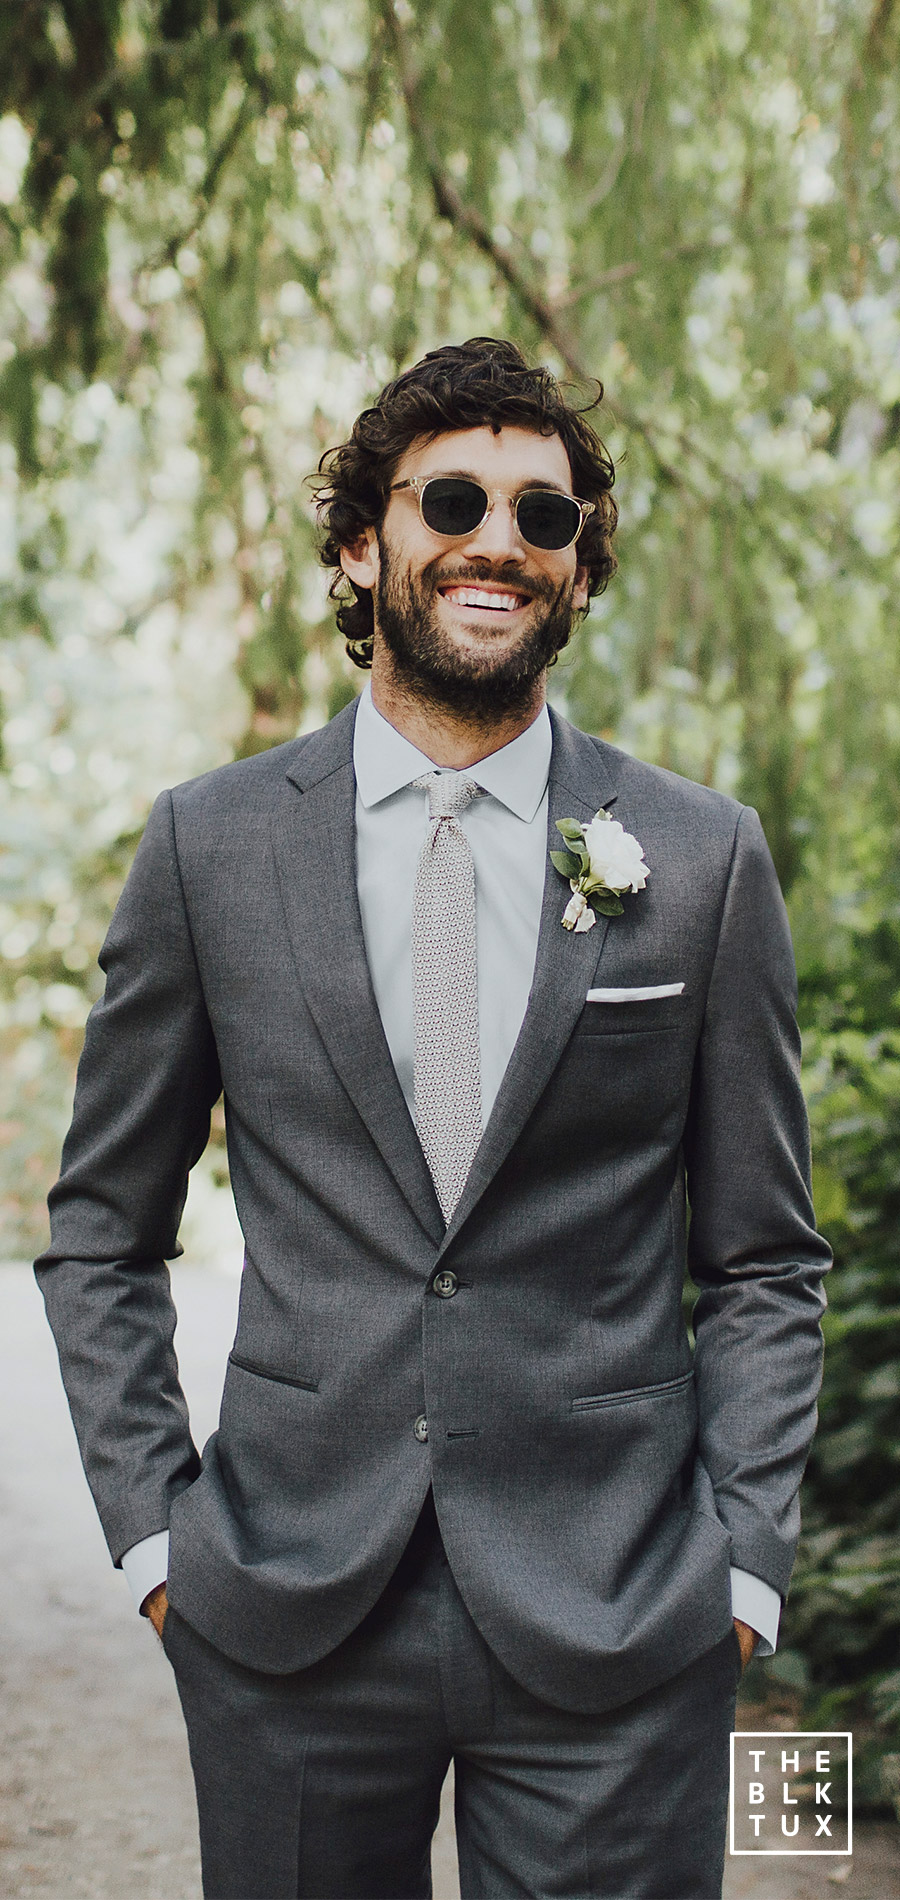 Wedding Tux Rental.Suit Up In Style The Black Tux Way Tuxedo Rentals Done